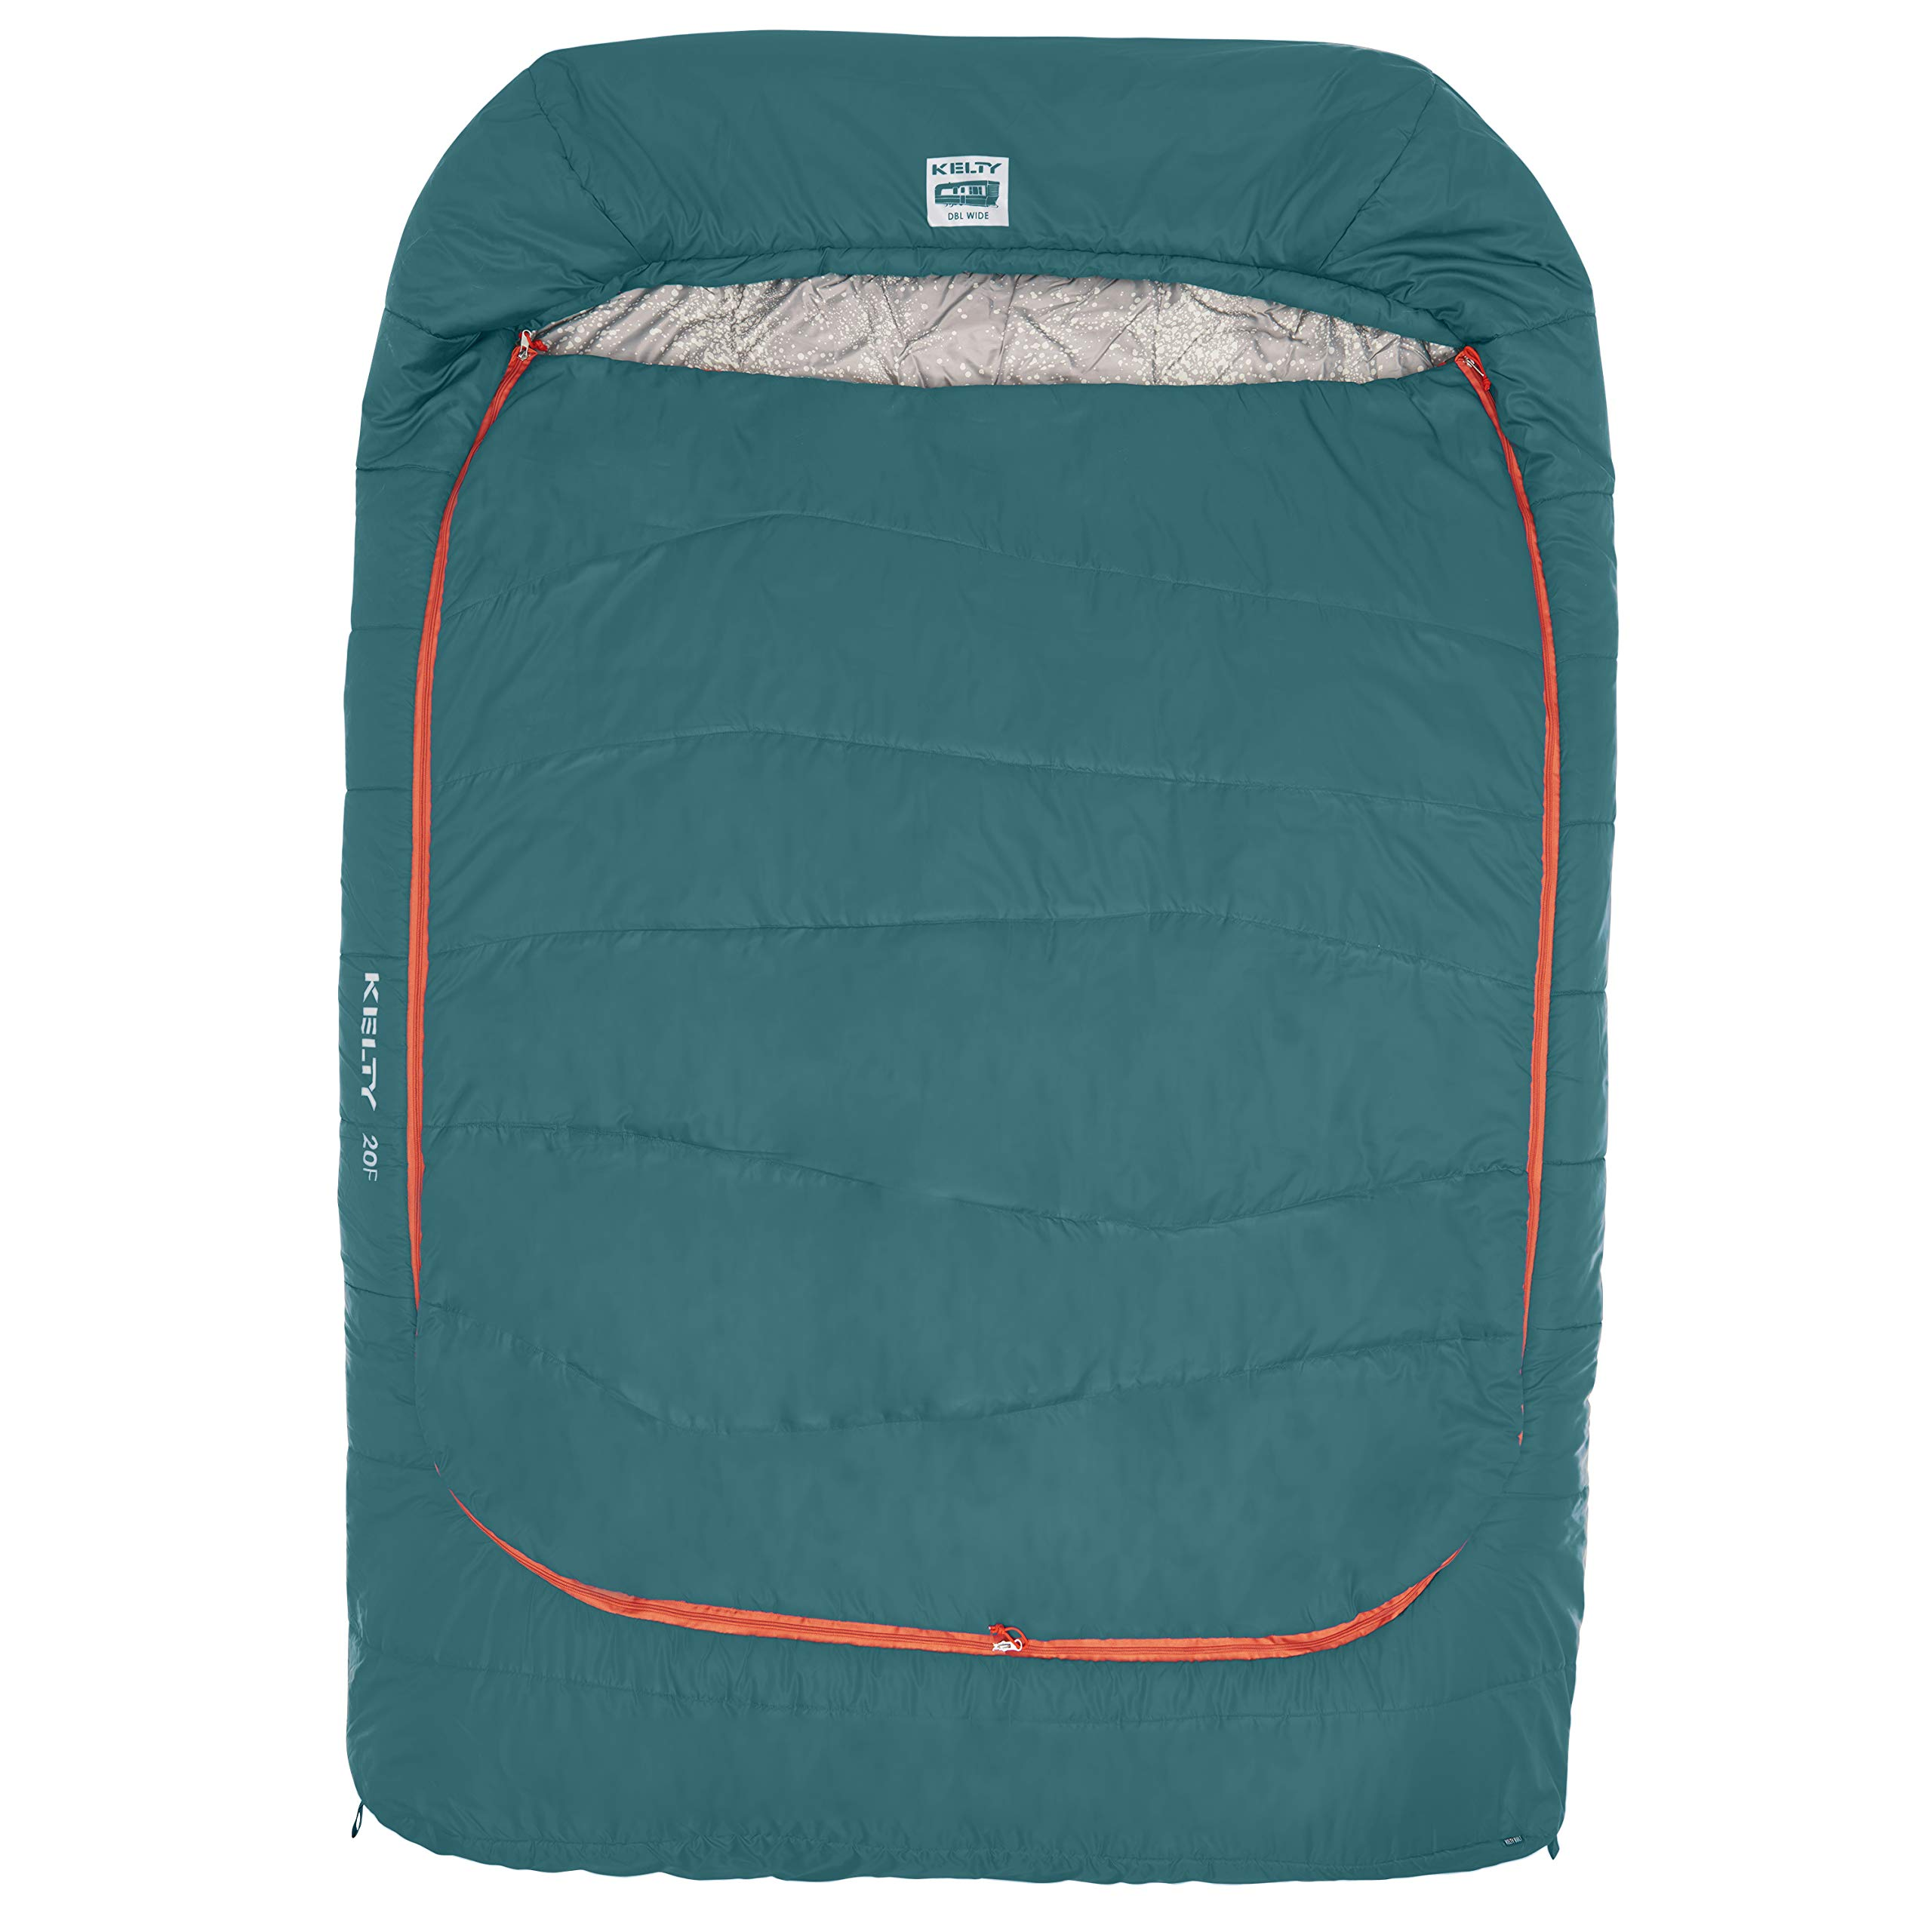 Kelty Tru.Comfort Doublewide 20 Degree Sleeping Bag - Two Person Synthetic Camping Sleeping Bag for Couples & Family Camping - Stuff Sack Included by Kelty